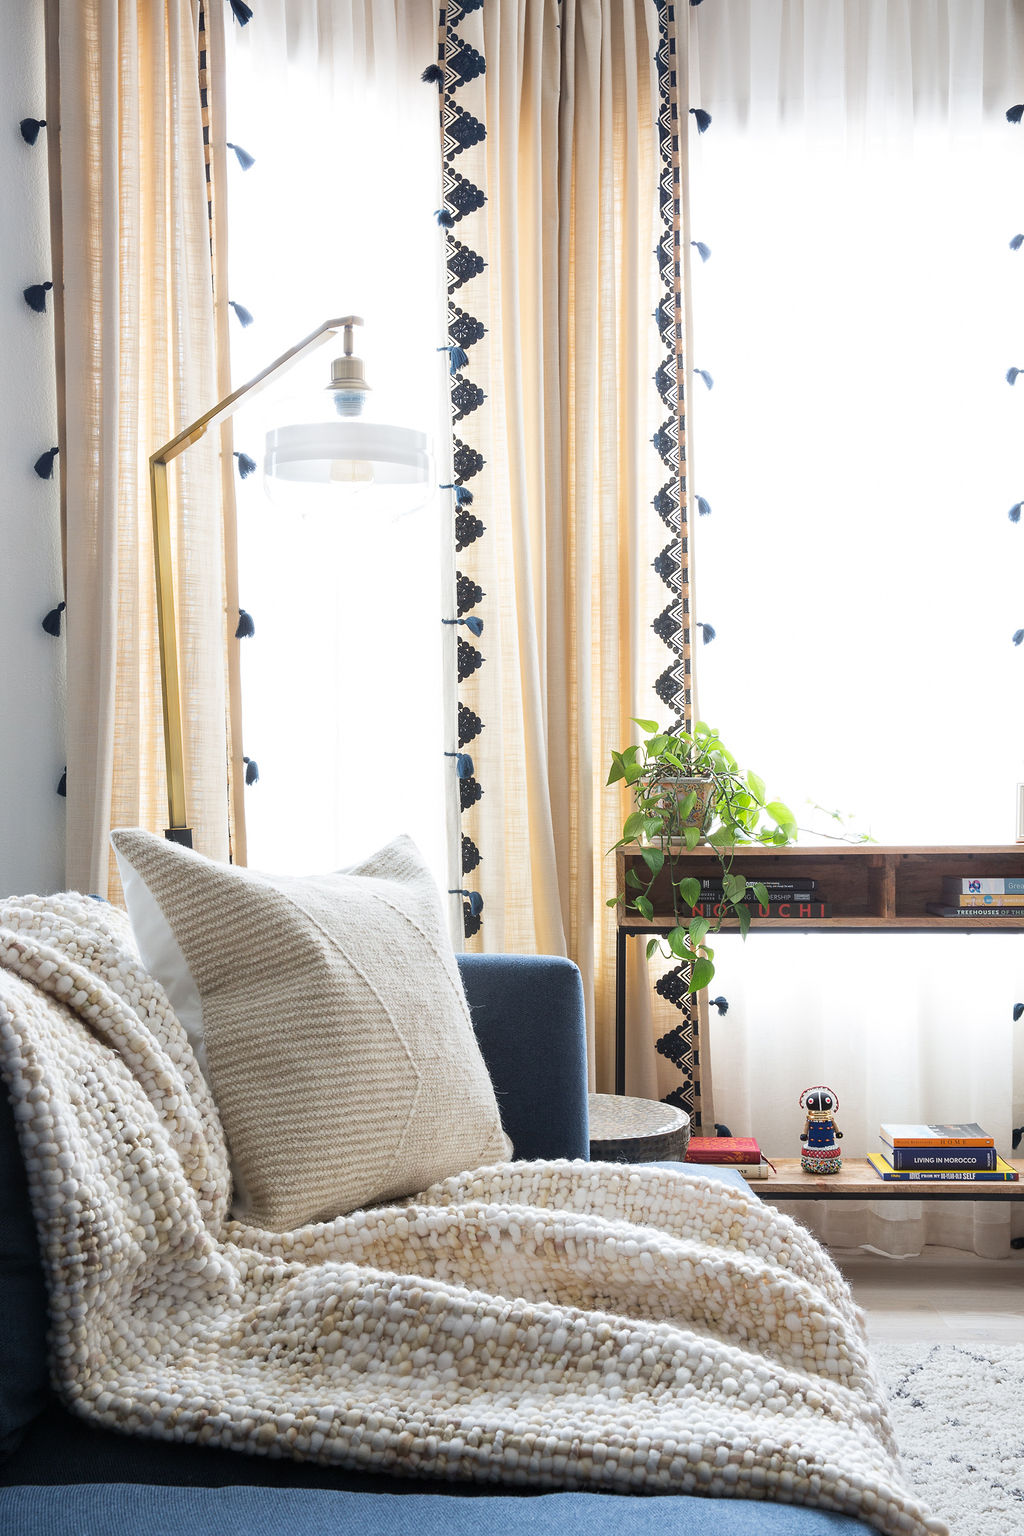 Love & Interiors_Cozy_ San Francisco_Living Room_Blue Sofa_Leather Poufs_Tasseled Curtains_Plants.jpg